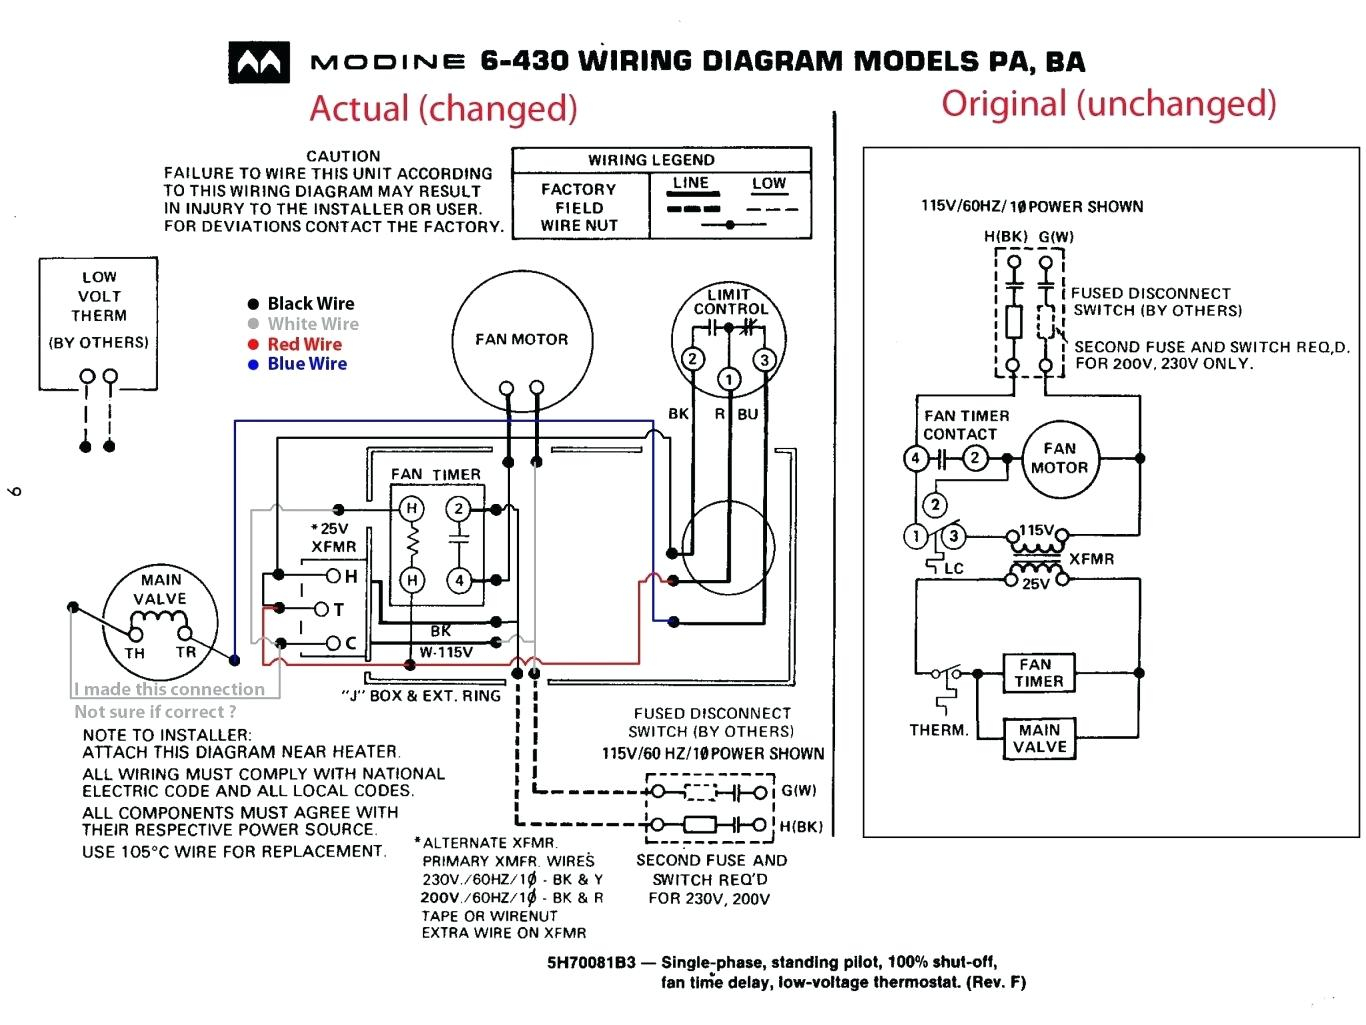 aube rc840t 240 wiring diagram Download-Aube Rc840t 240 Wiring Diagram Inspirational Furnace thermostat Wiring Diagram Rv Shower Valves thermostatic 13-r